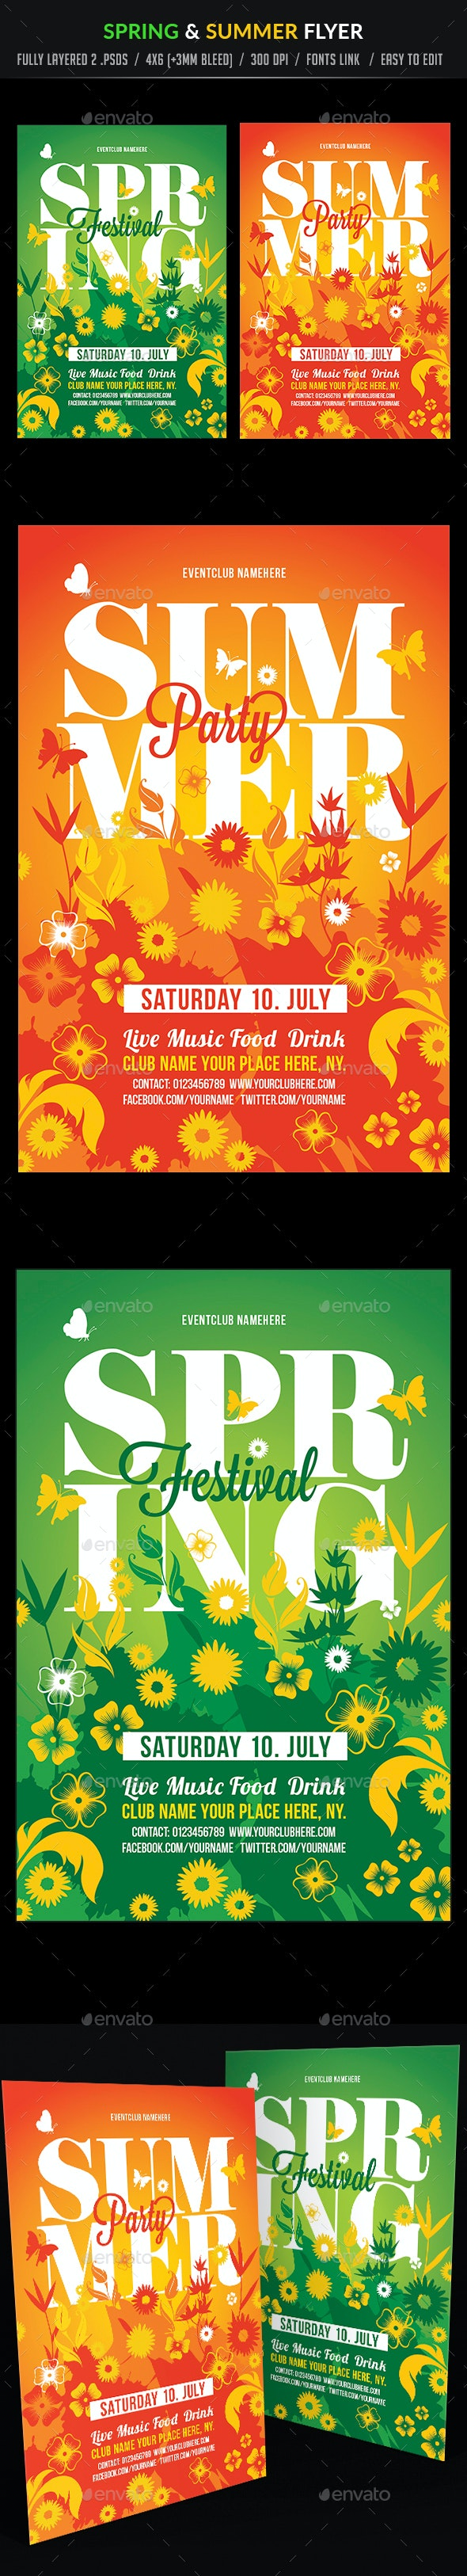 Spring and Summer Flyer Template - Clubs & Parties Events